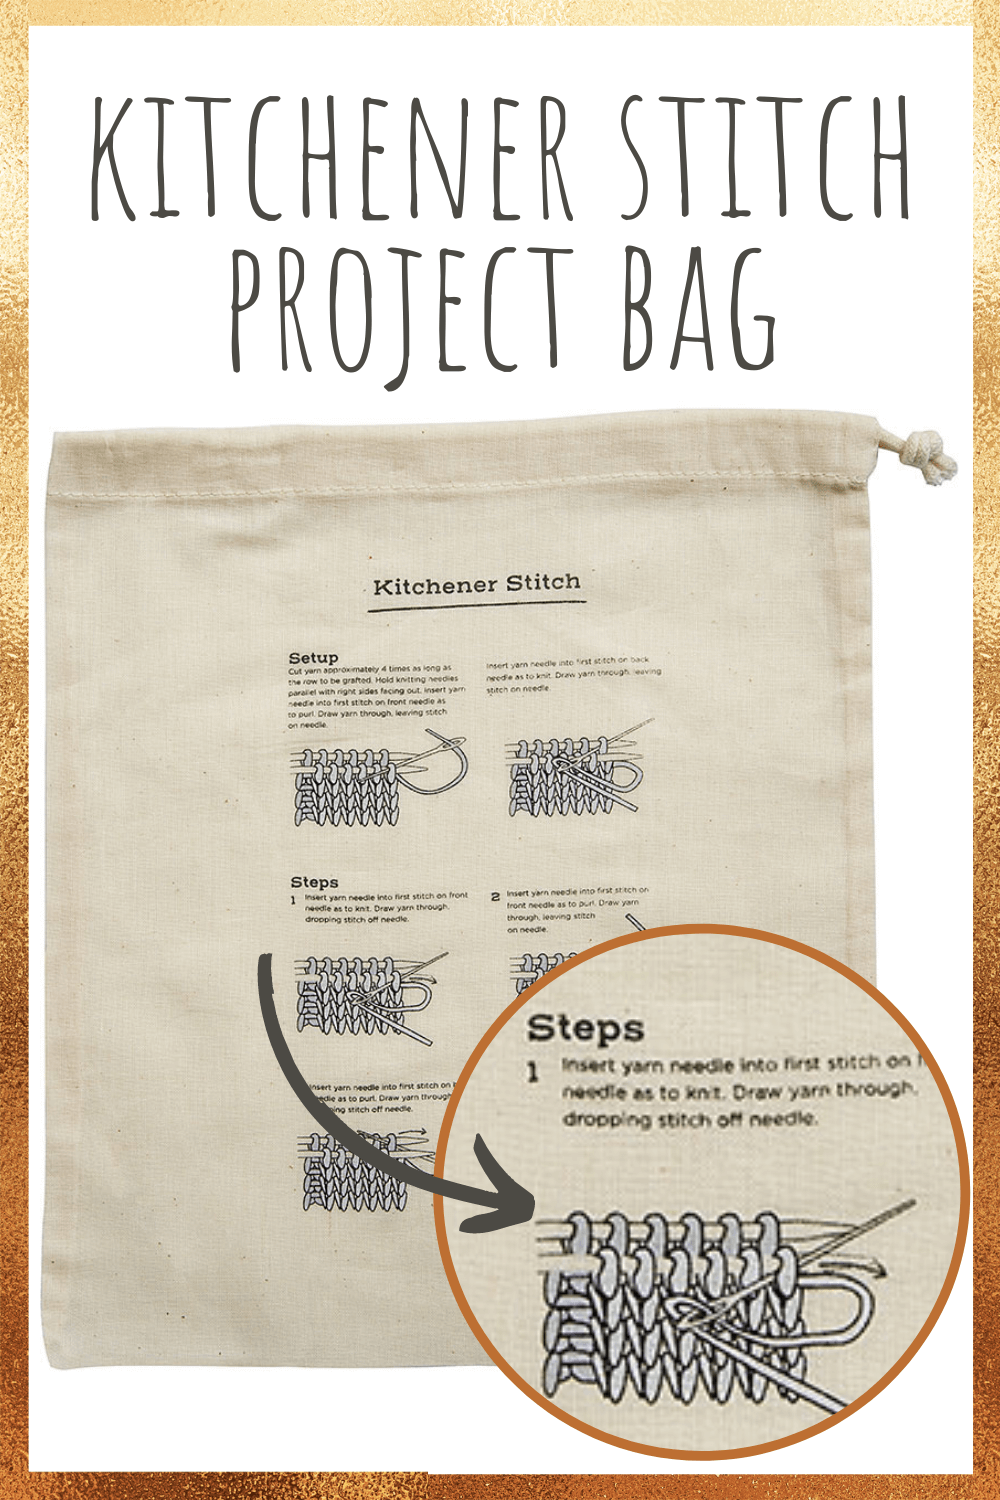 A knitting project bag with instructions for how to do the Kitchener stitch printed on it.